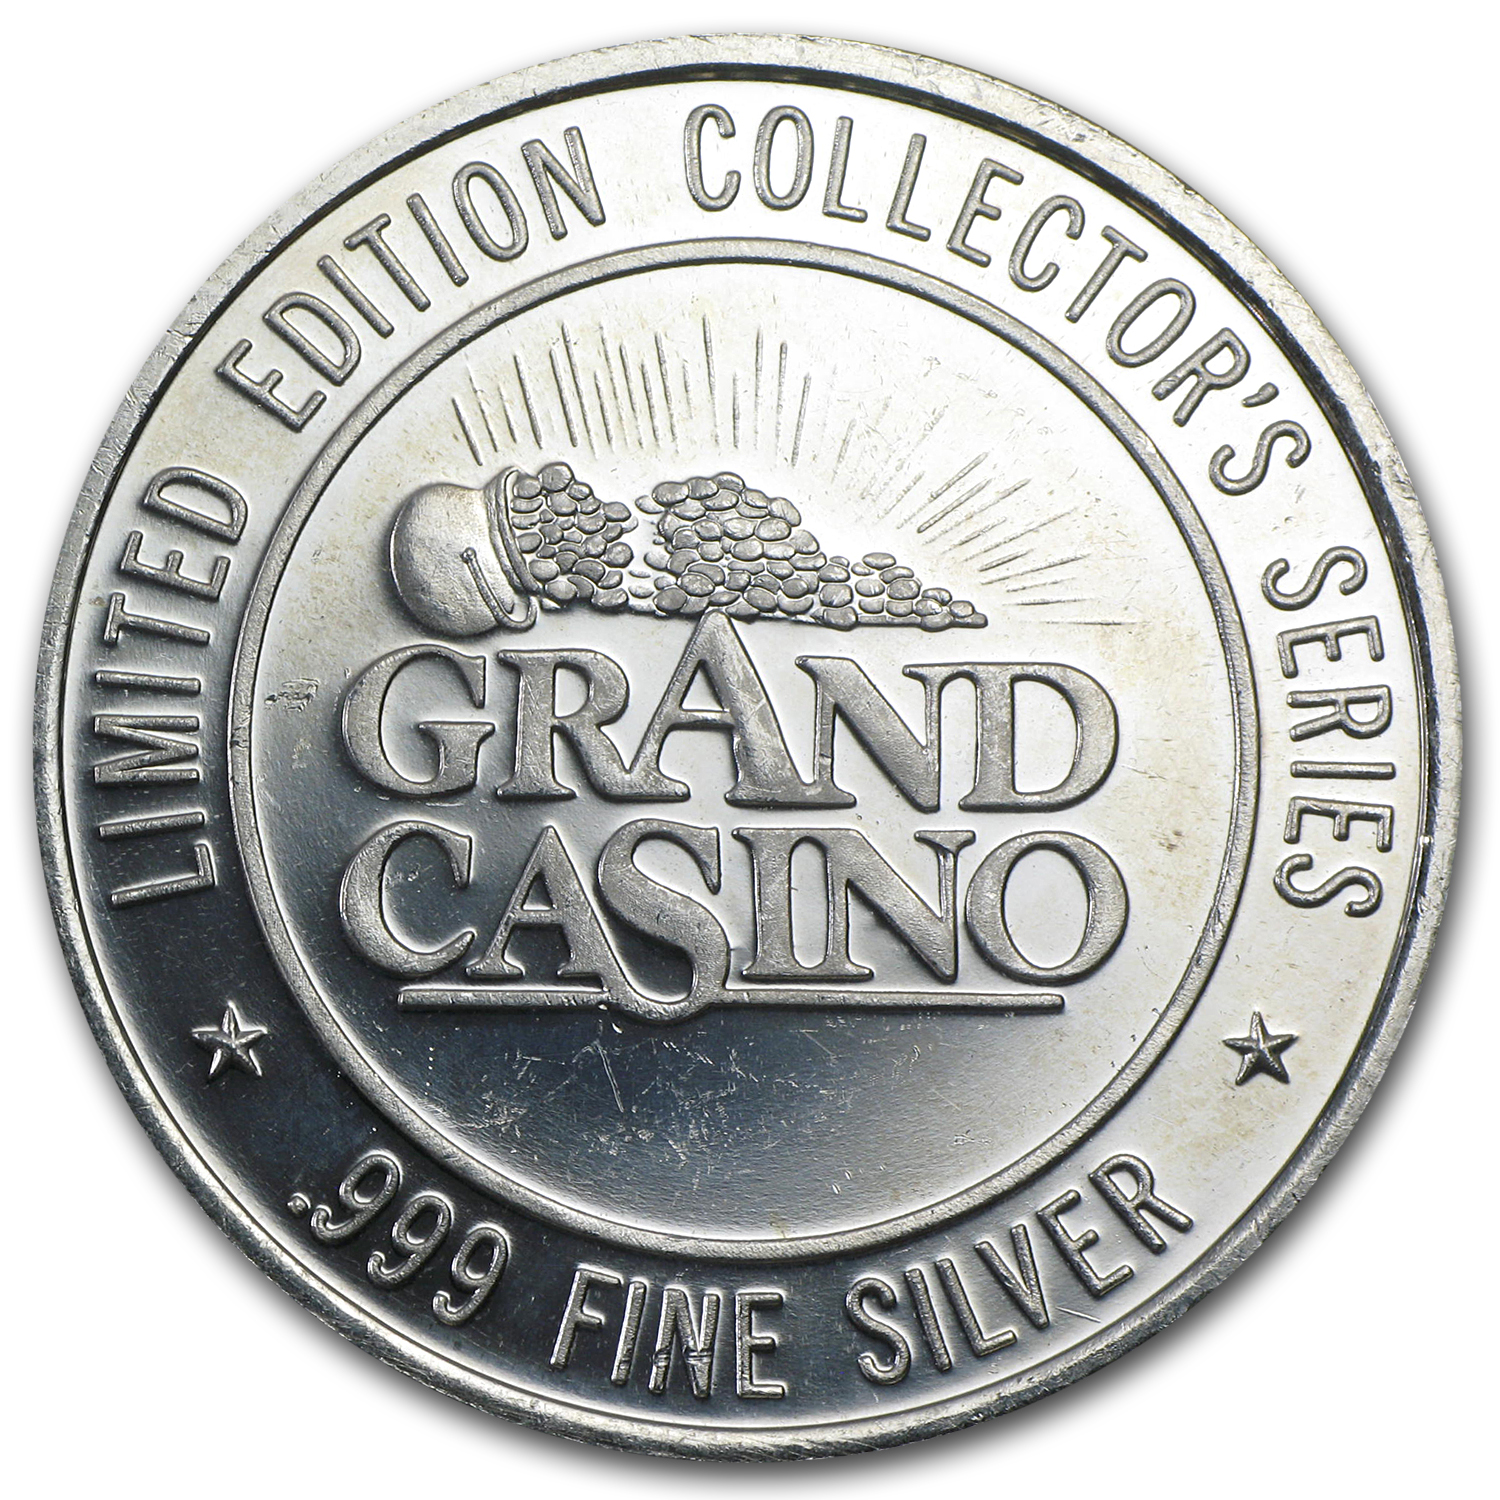 1.5 oz Silver Round - Grand Casino Gaming Token